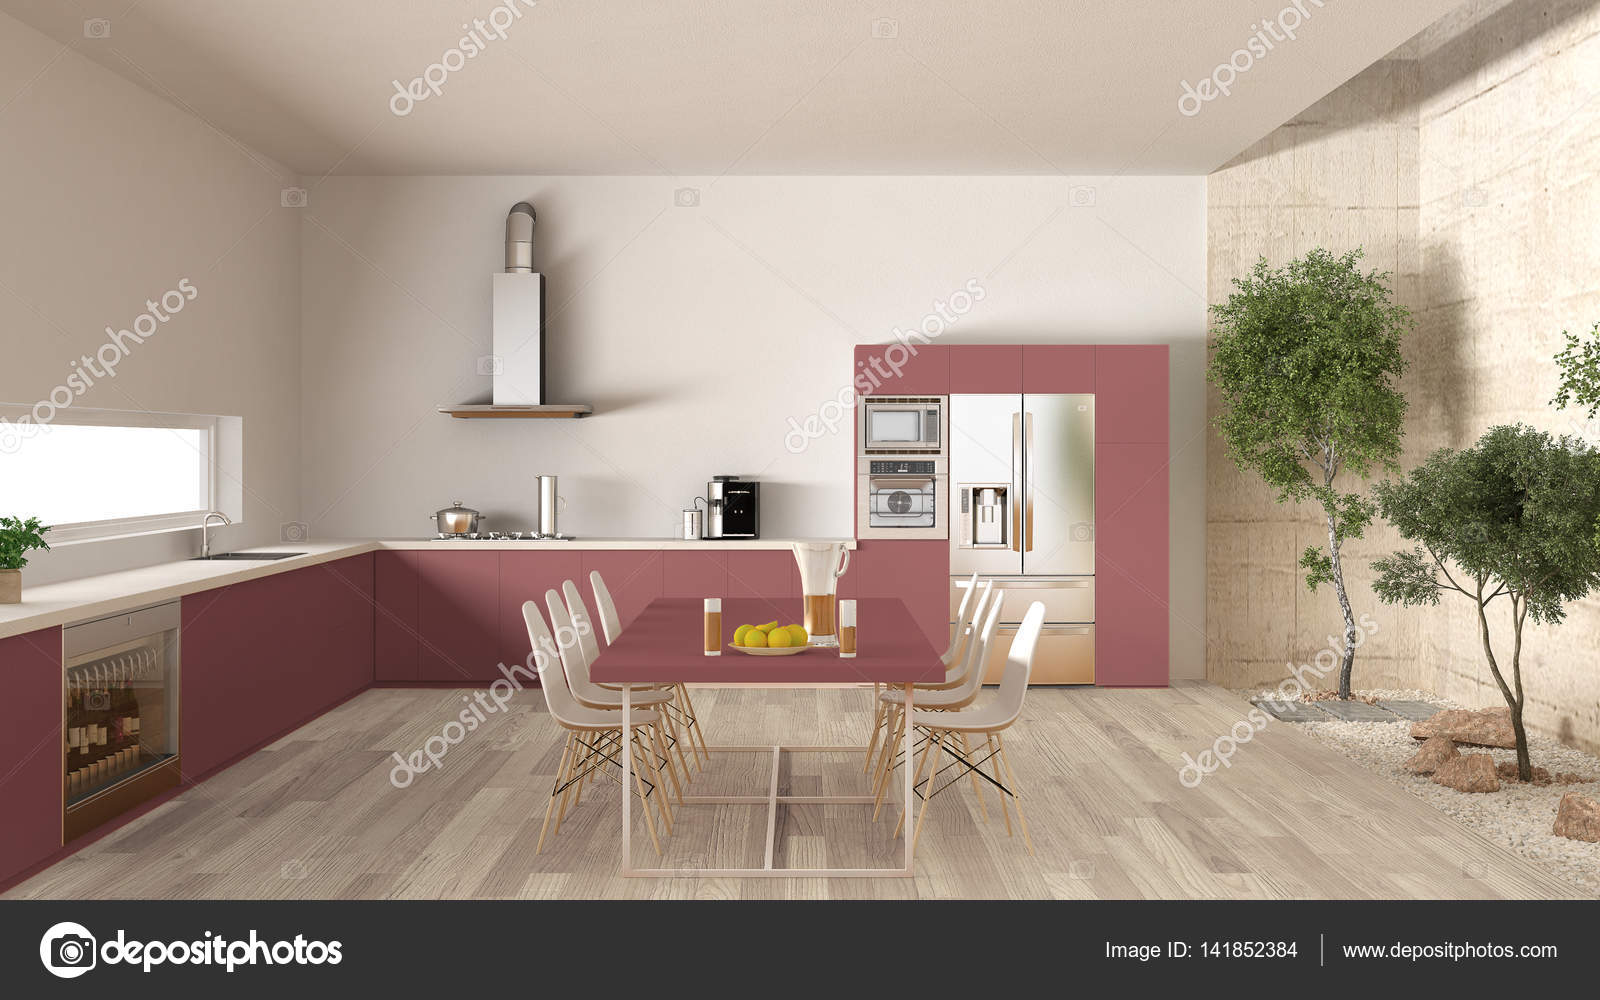 https://st3.depositphotos.com/1152281/14185/i/1600/depositphotos_141852384-stock-photo-white-and-red-kitchen-with.jpg